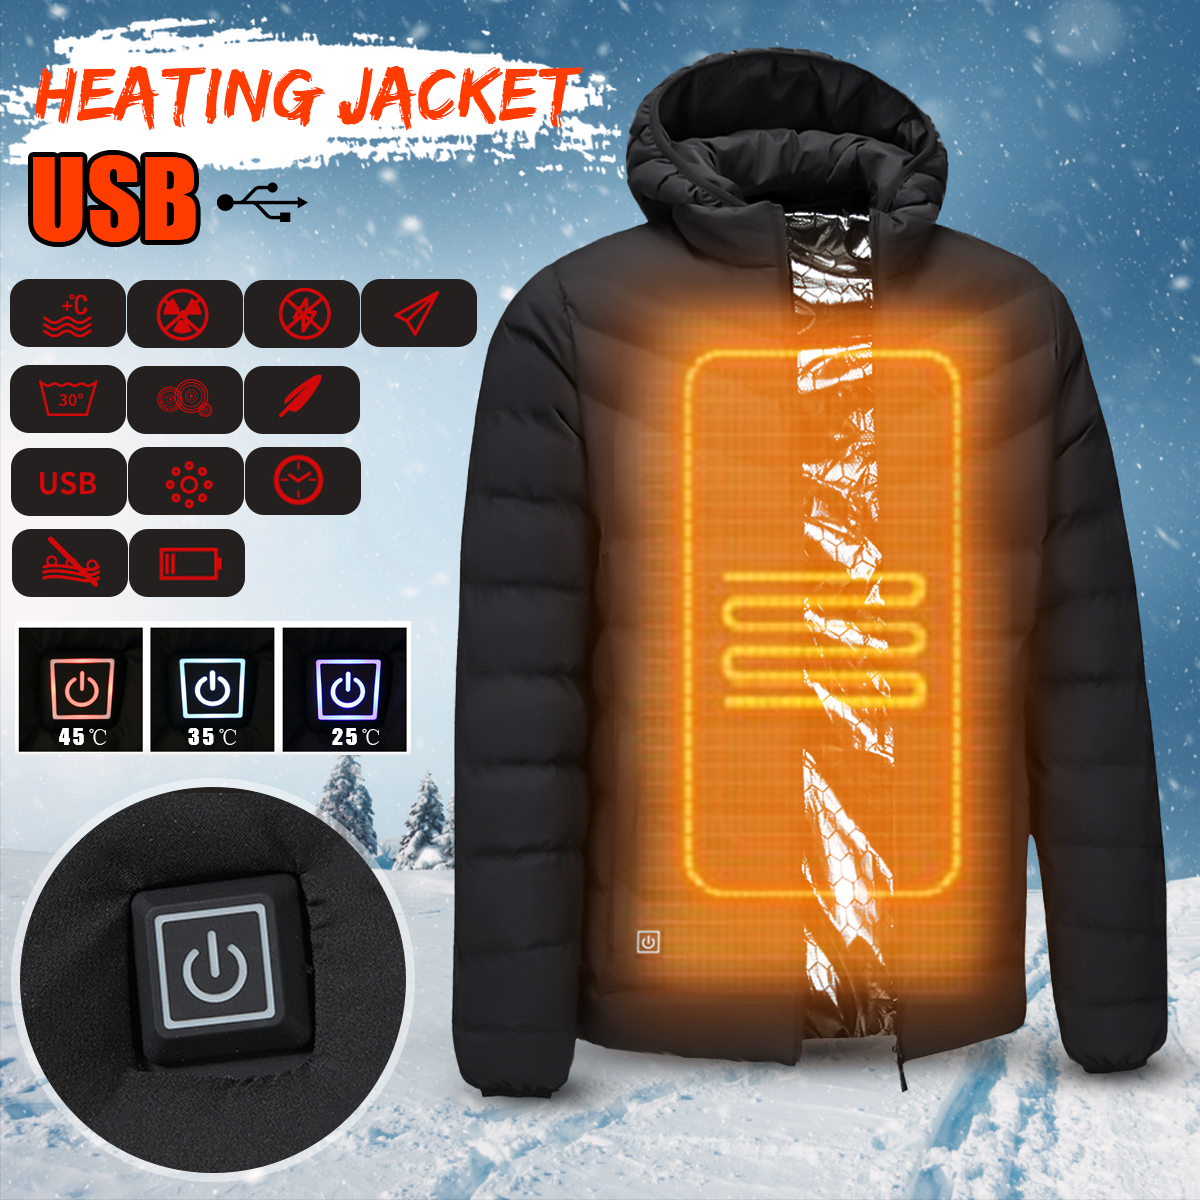 Mens Winter Heated Safety Vest Jacket USB Hooded Work Heating Jacket Vest Coats Adjustable Temperature Control Safety Clothing mens winter heated usb charge hooded work jacket coats vest adjustable temperature control safety clothing